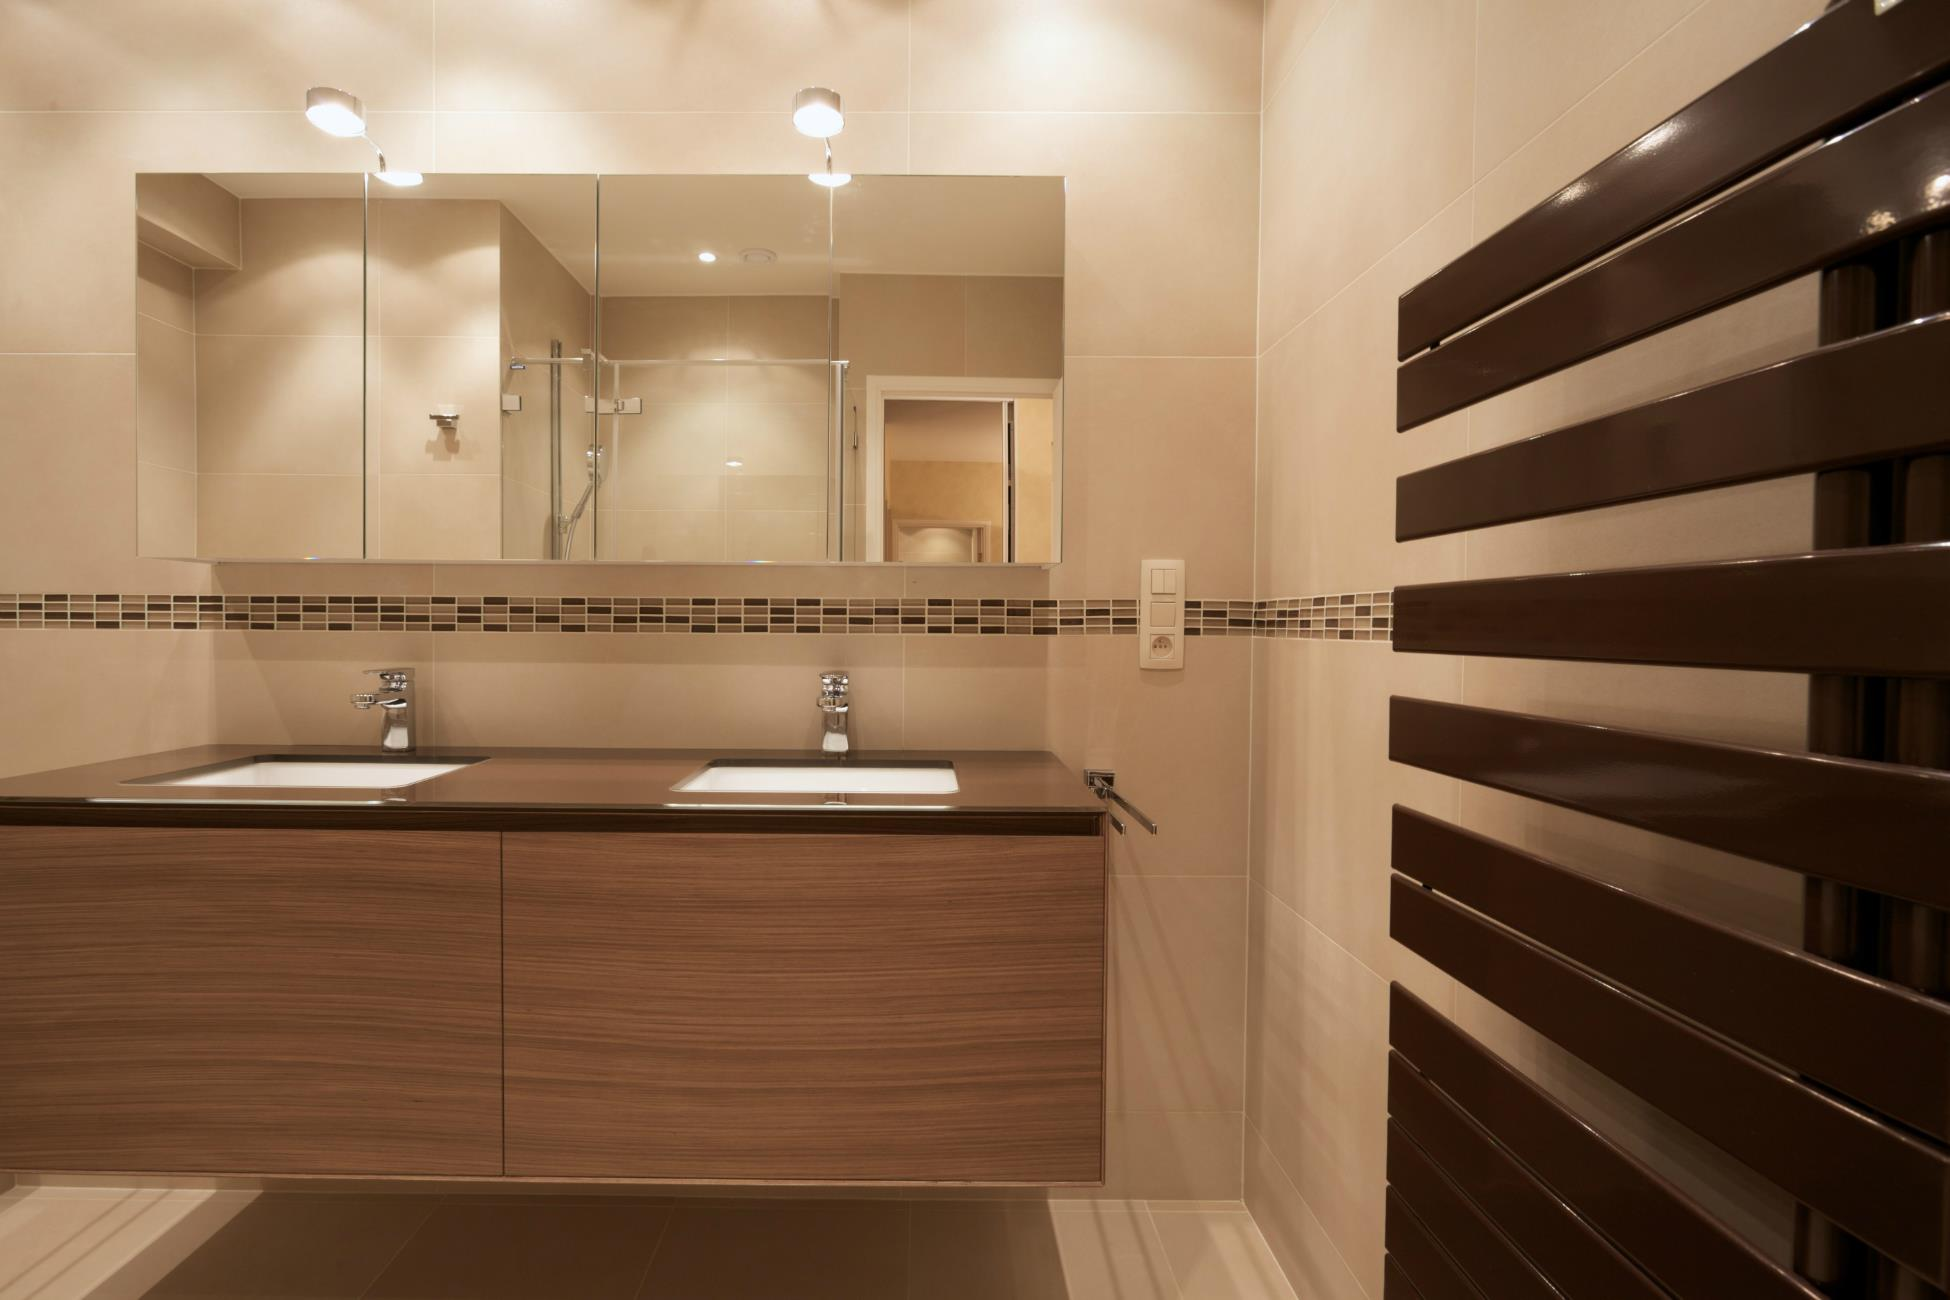 Salle de bain design r alisations renov management for Design salle de bain